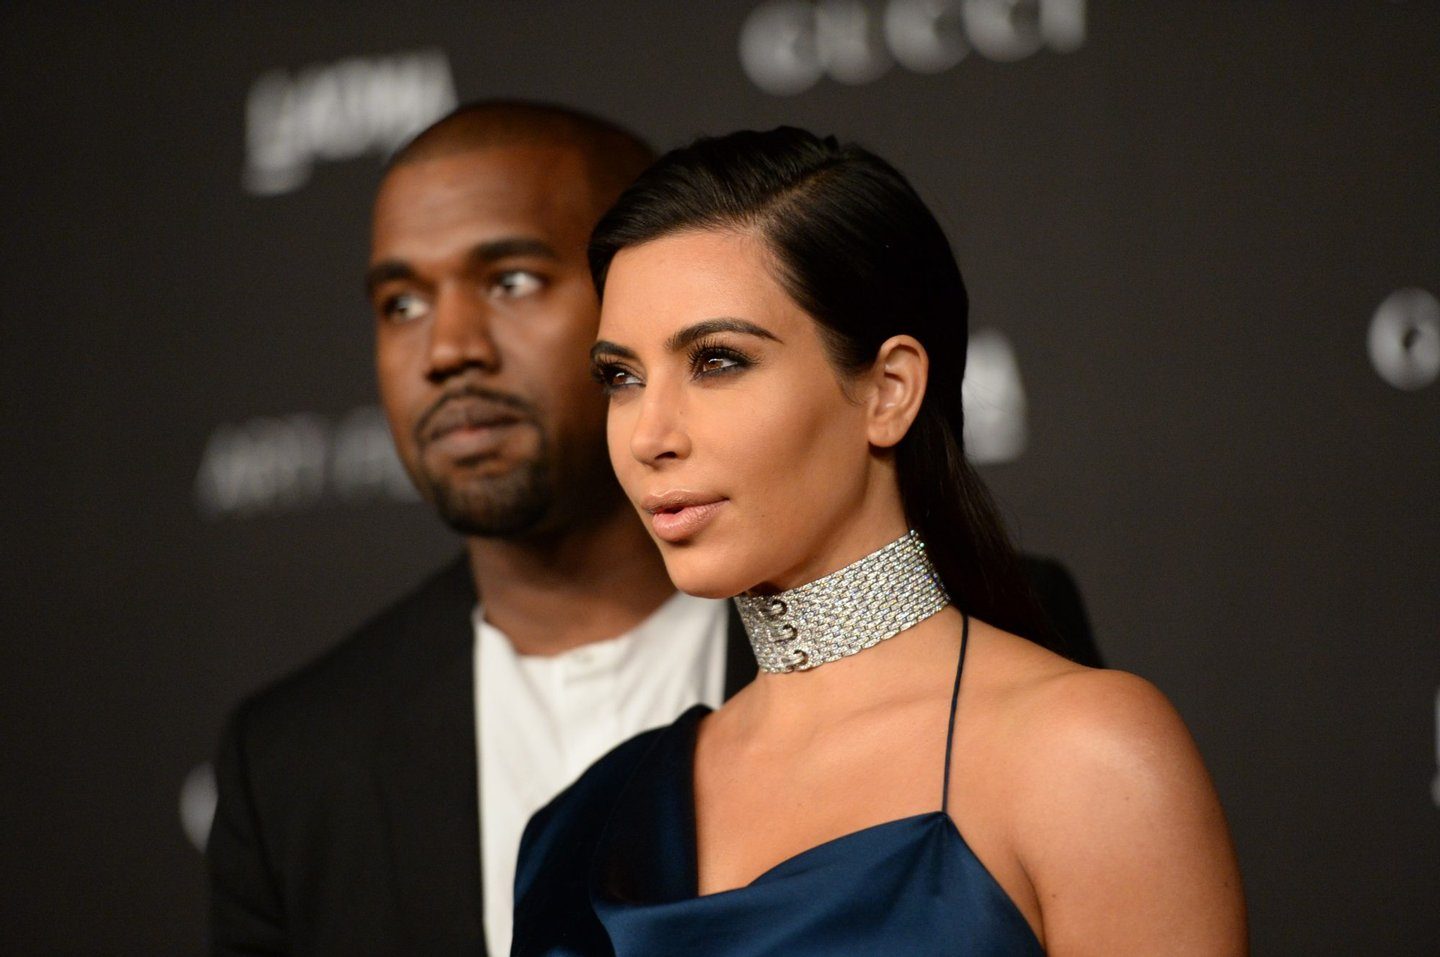 LOS ANGELES, CA - NOVEMBER 01: Recording artist Kanye West and TV personality Kim Kardashian West attend the 2014 LACMA Art + Film Gala honoring Barbara Kruger and Quentin Tarantino presented by Gucci at LACMA on November 1, 2014 in Los Angeles, California. (Photo by Jason Merritt/Getty Images for LACMA)